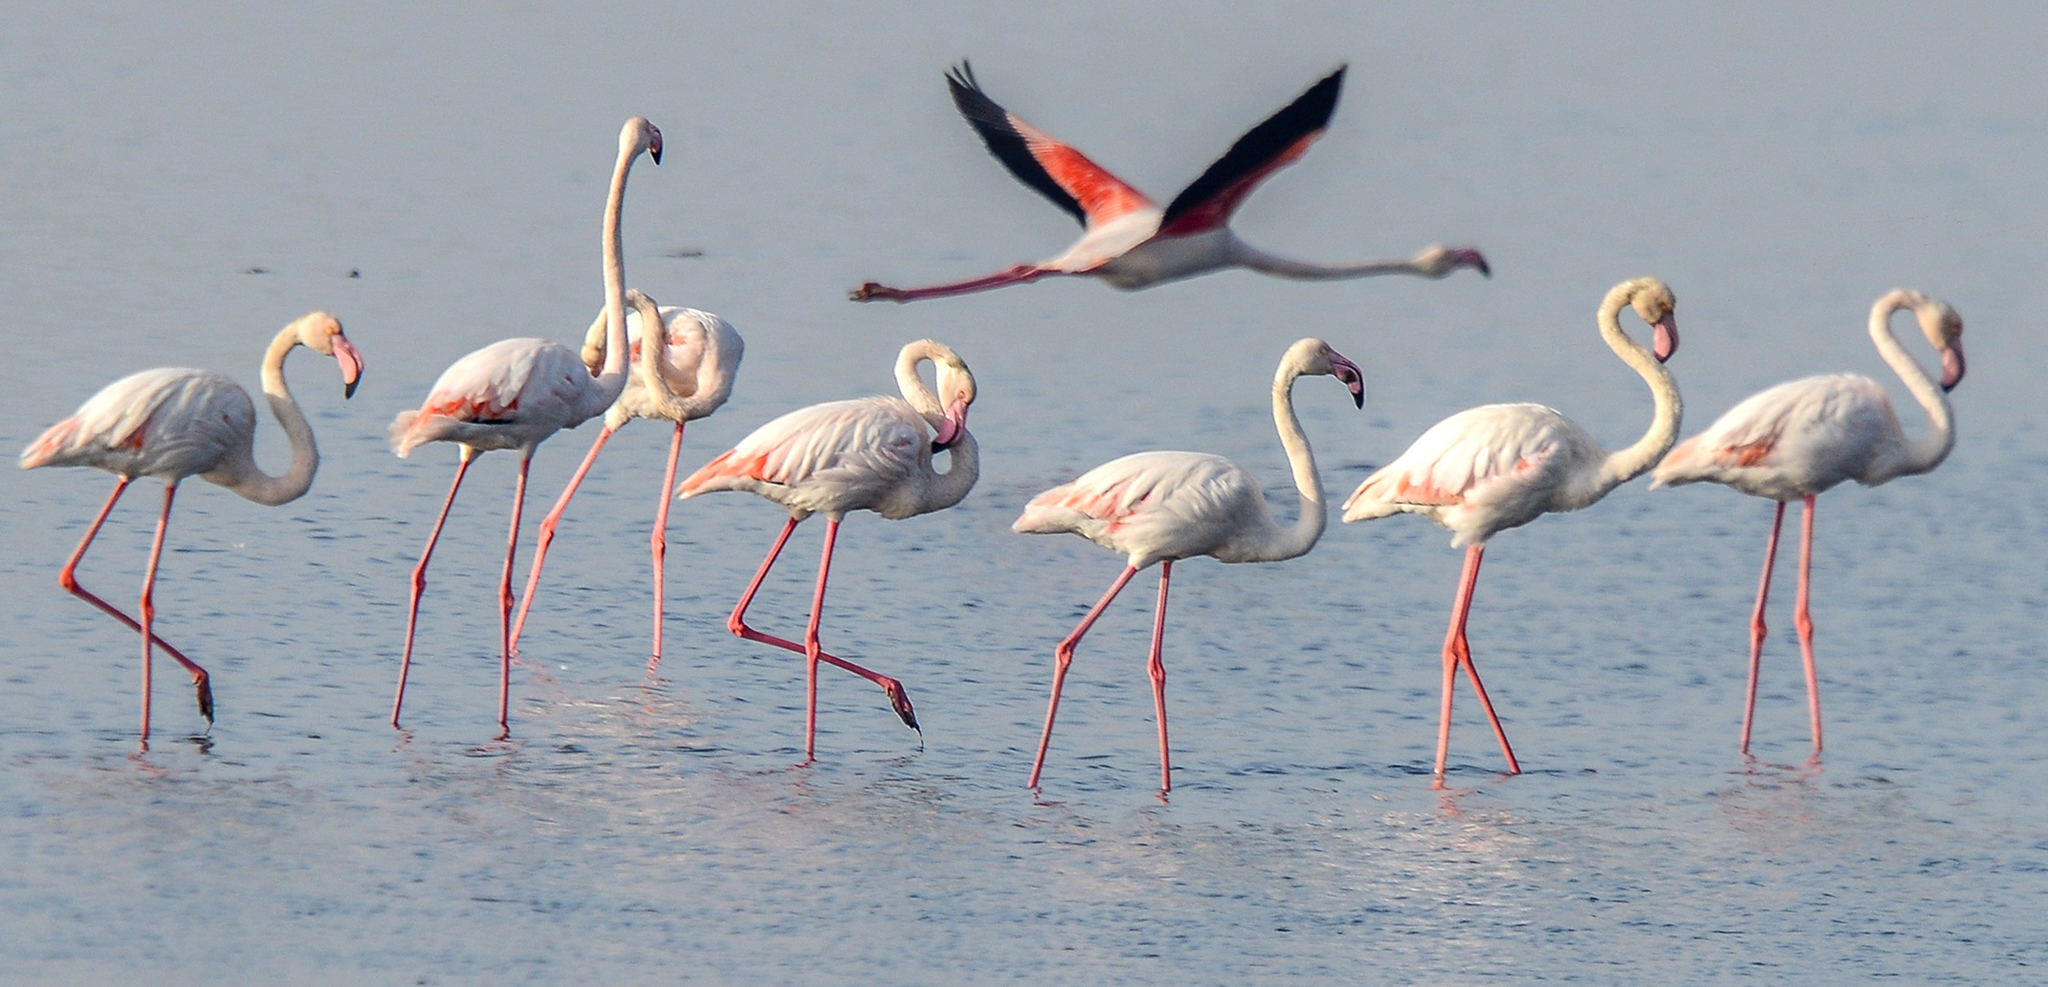 Migratory birds of the flamingo species congregate at the shore of Kuwait City, Kuwait, 06 December 2016. Flamingos and other migratory birds are having regular appearances on the coast at the beginning of warm winter in Kuwait.  EPA/RAED QUTENA